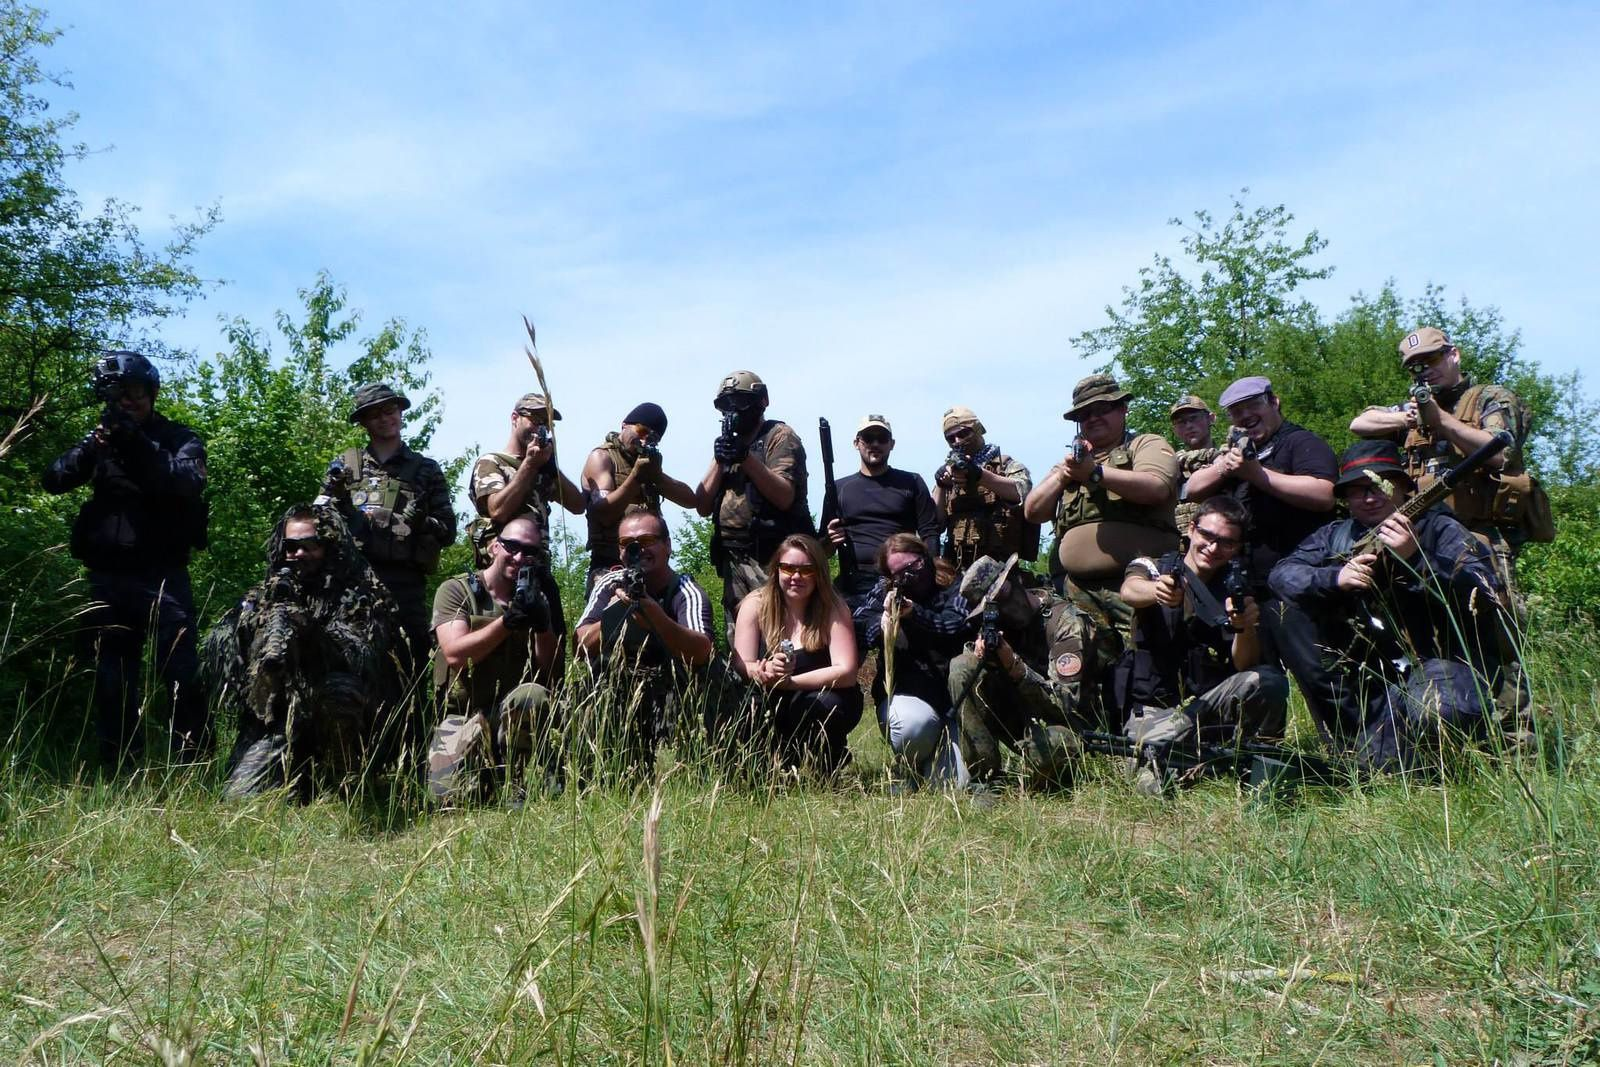 Photo empruntée sur le Facebook de la Black Eagles Airsoft.